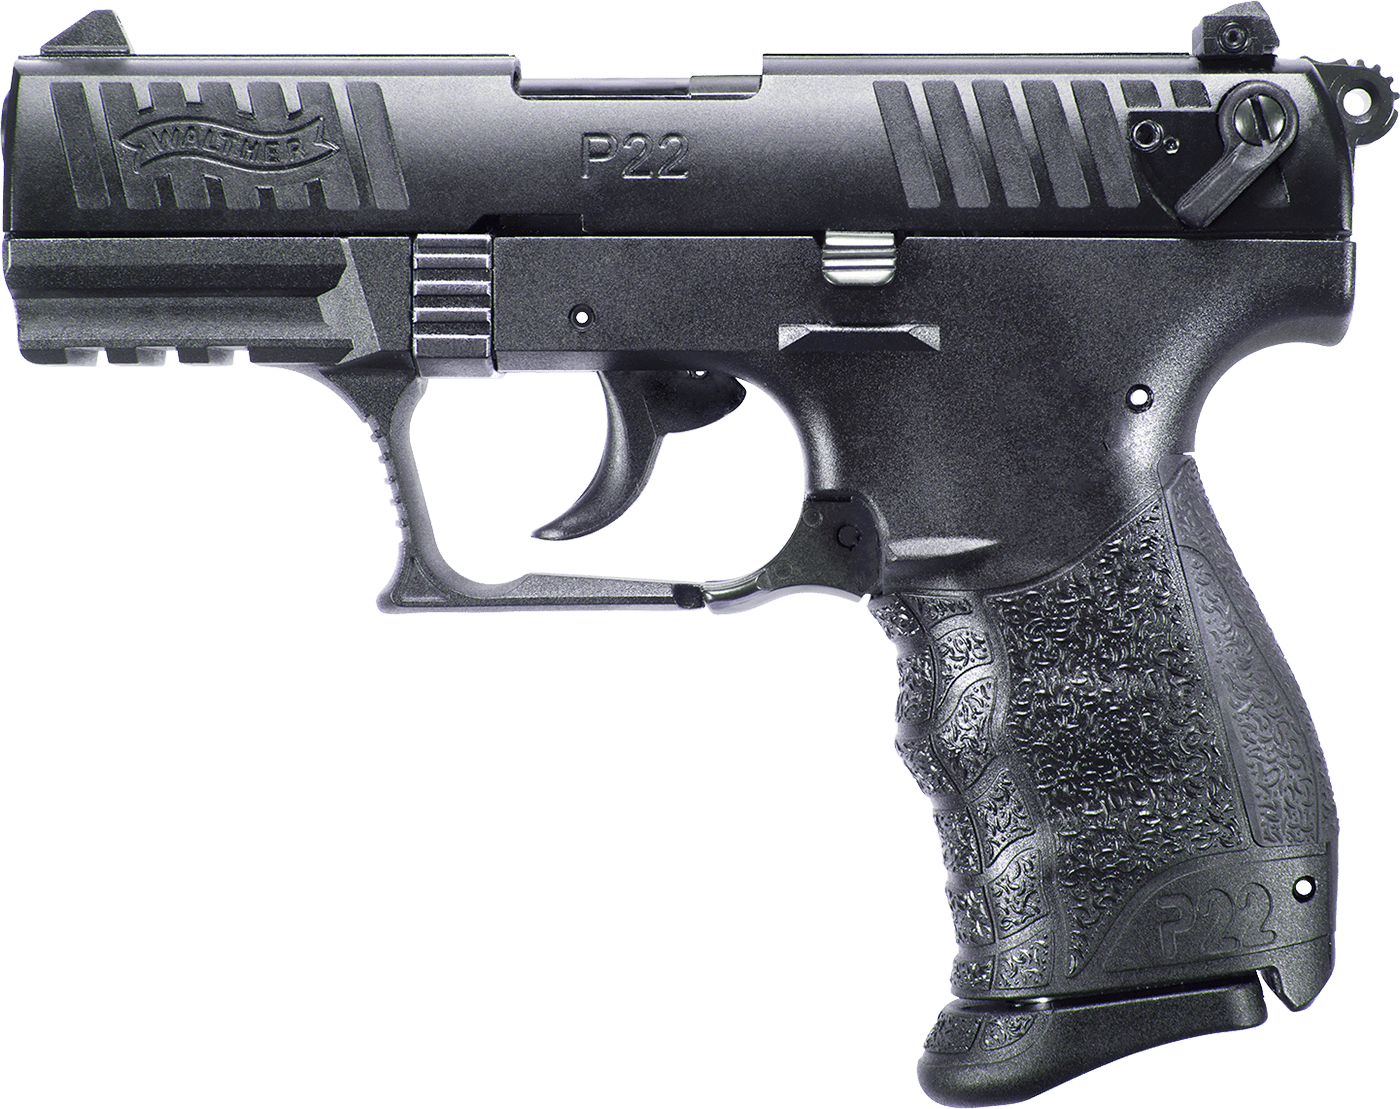 Walther P22 Review - Our Thoughts 1